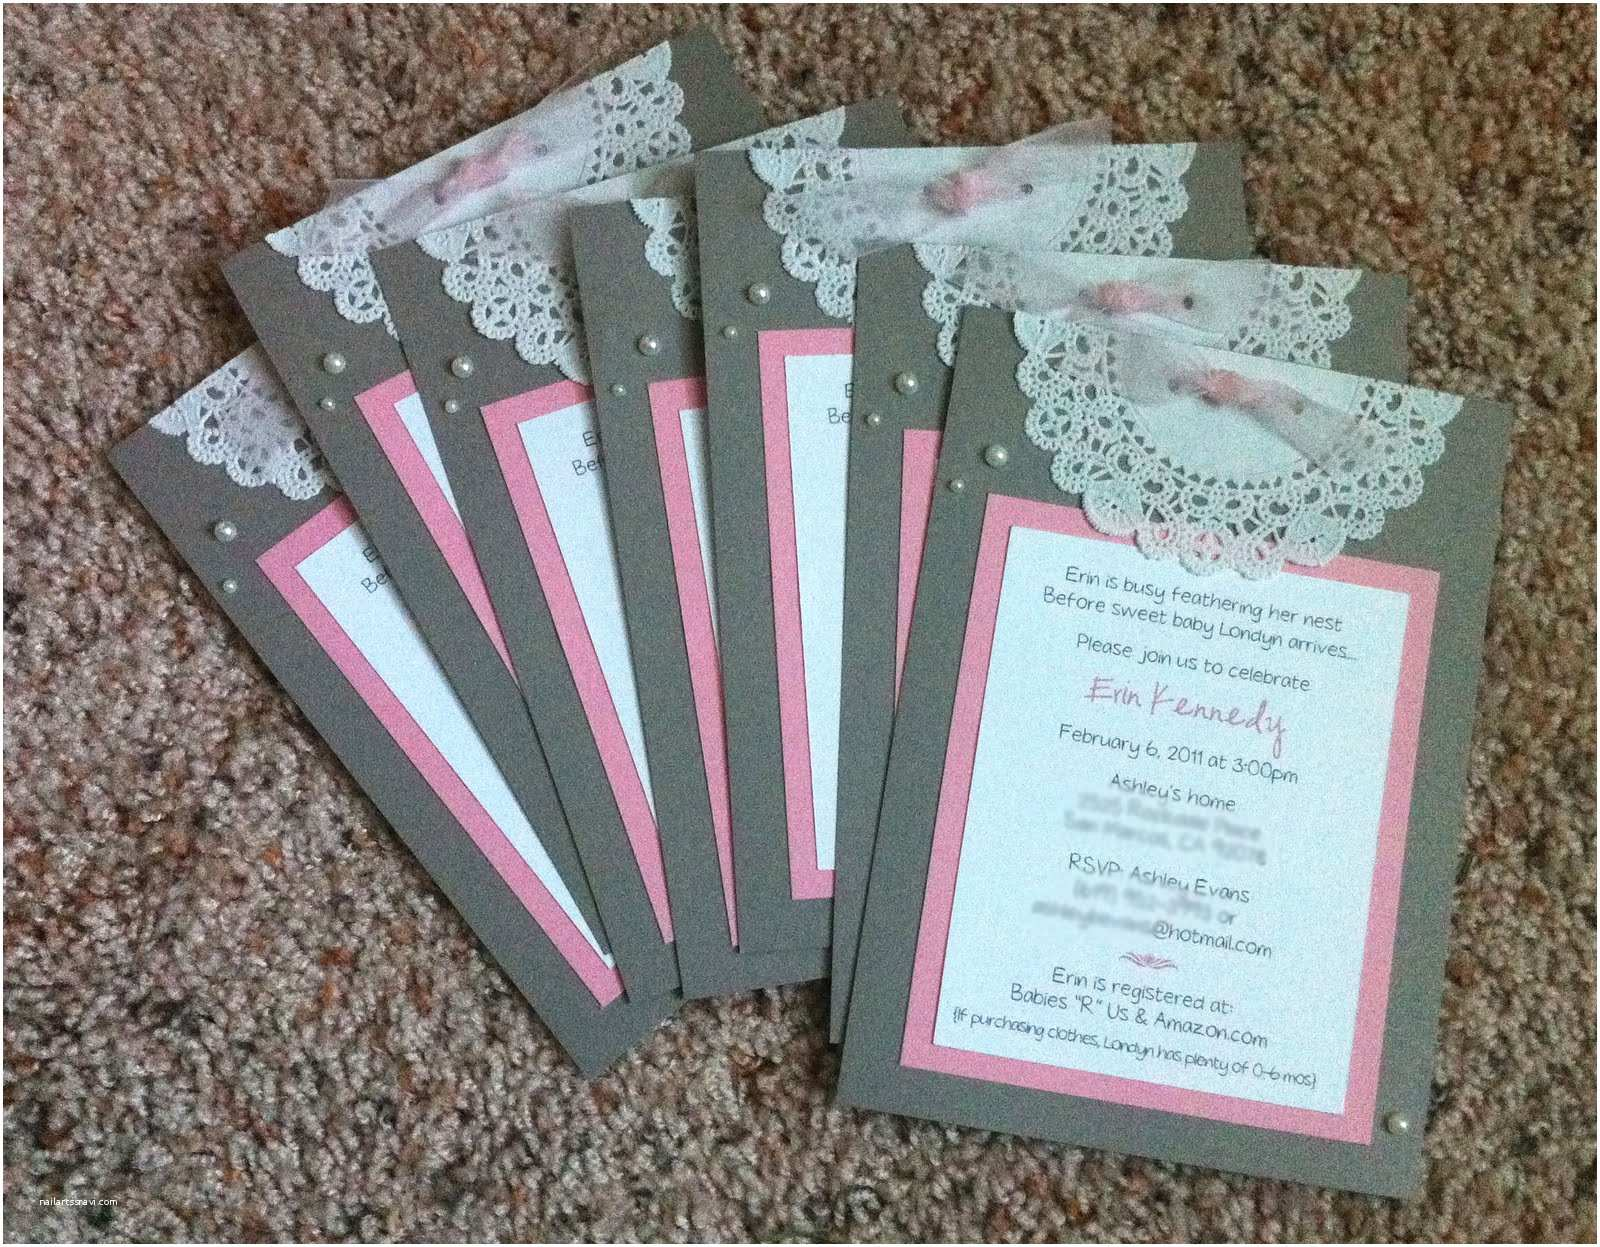 Scrapbook Wedding Invitations Playing with Paper Scrapbooks Cards & Diy Pearls & Lace